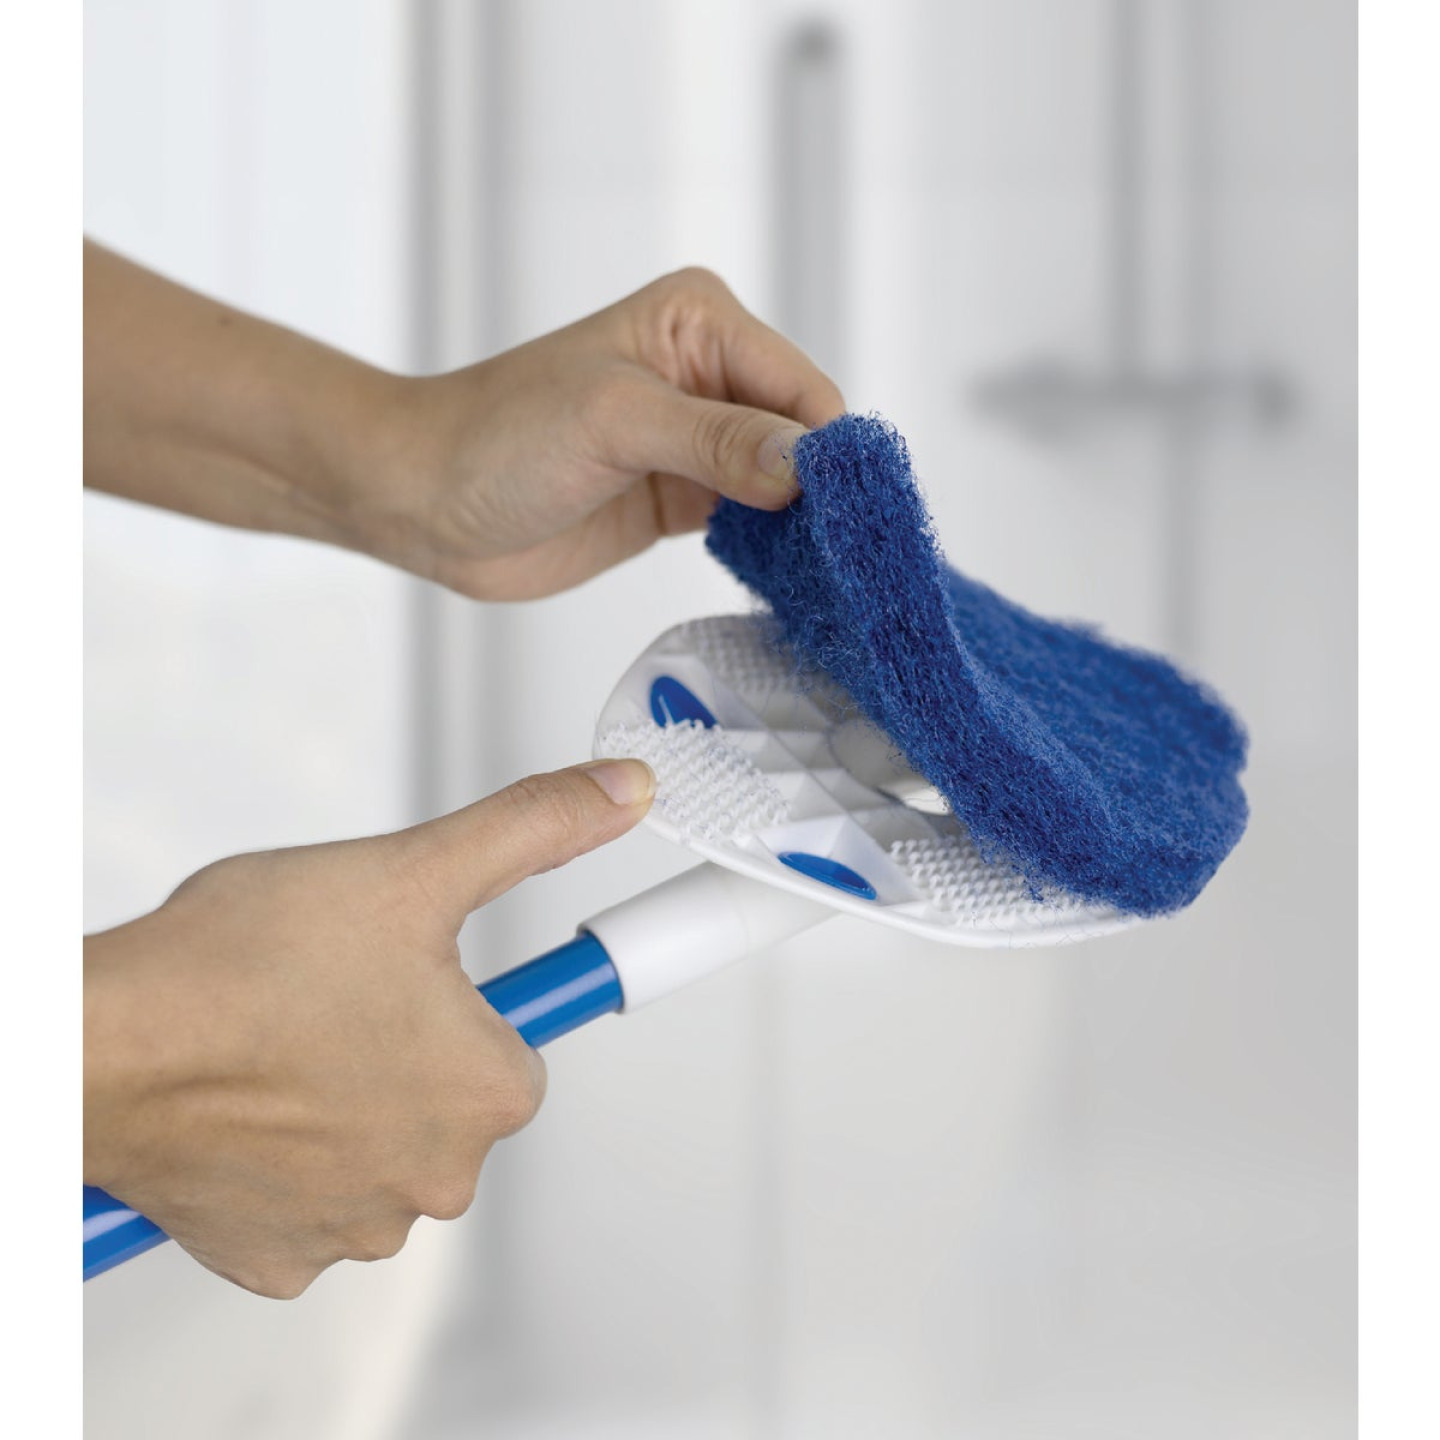 Clorox Extendable Handle Tub & Tile Scrubber Image 2